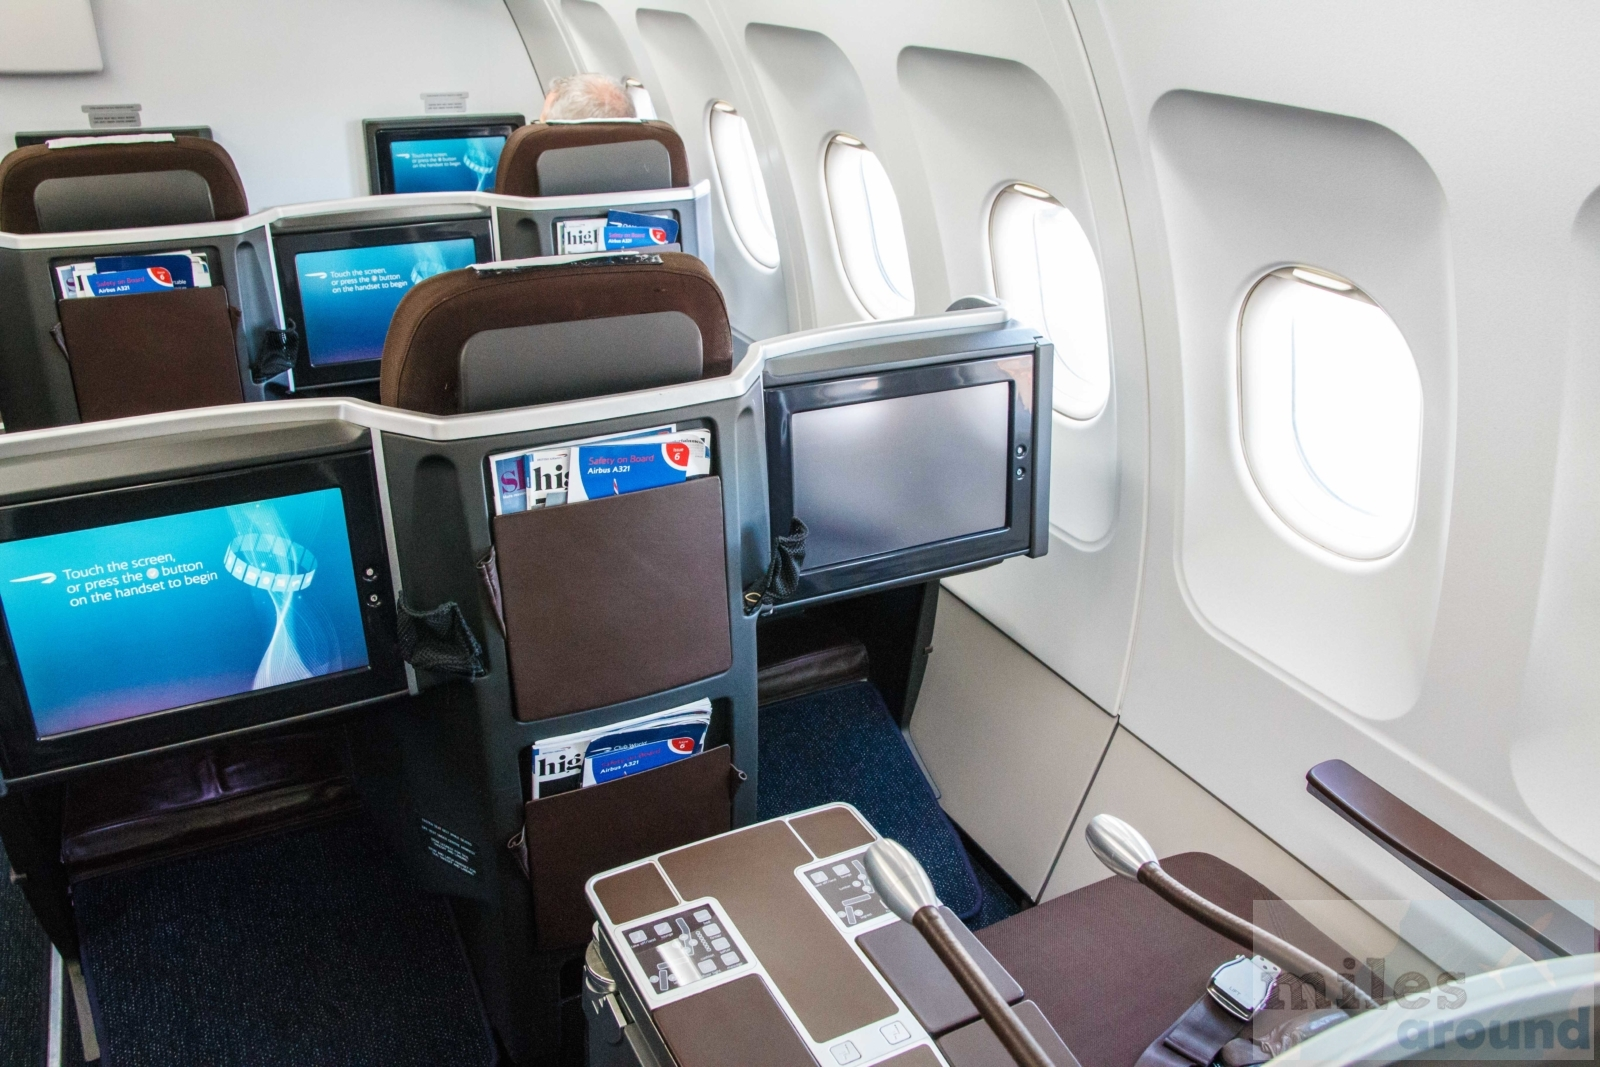 Economy, business and first class seats: what's the ...